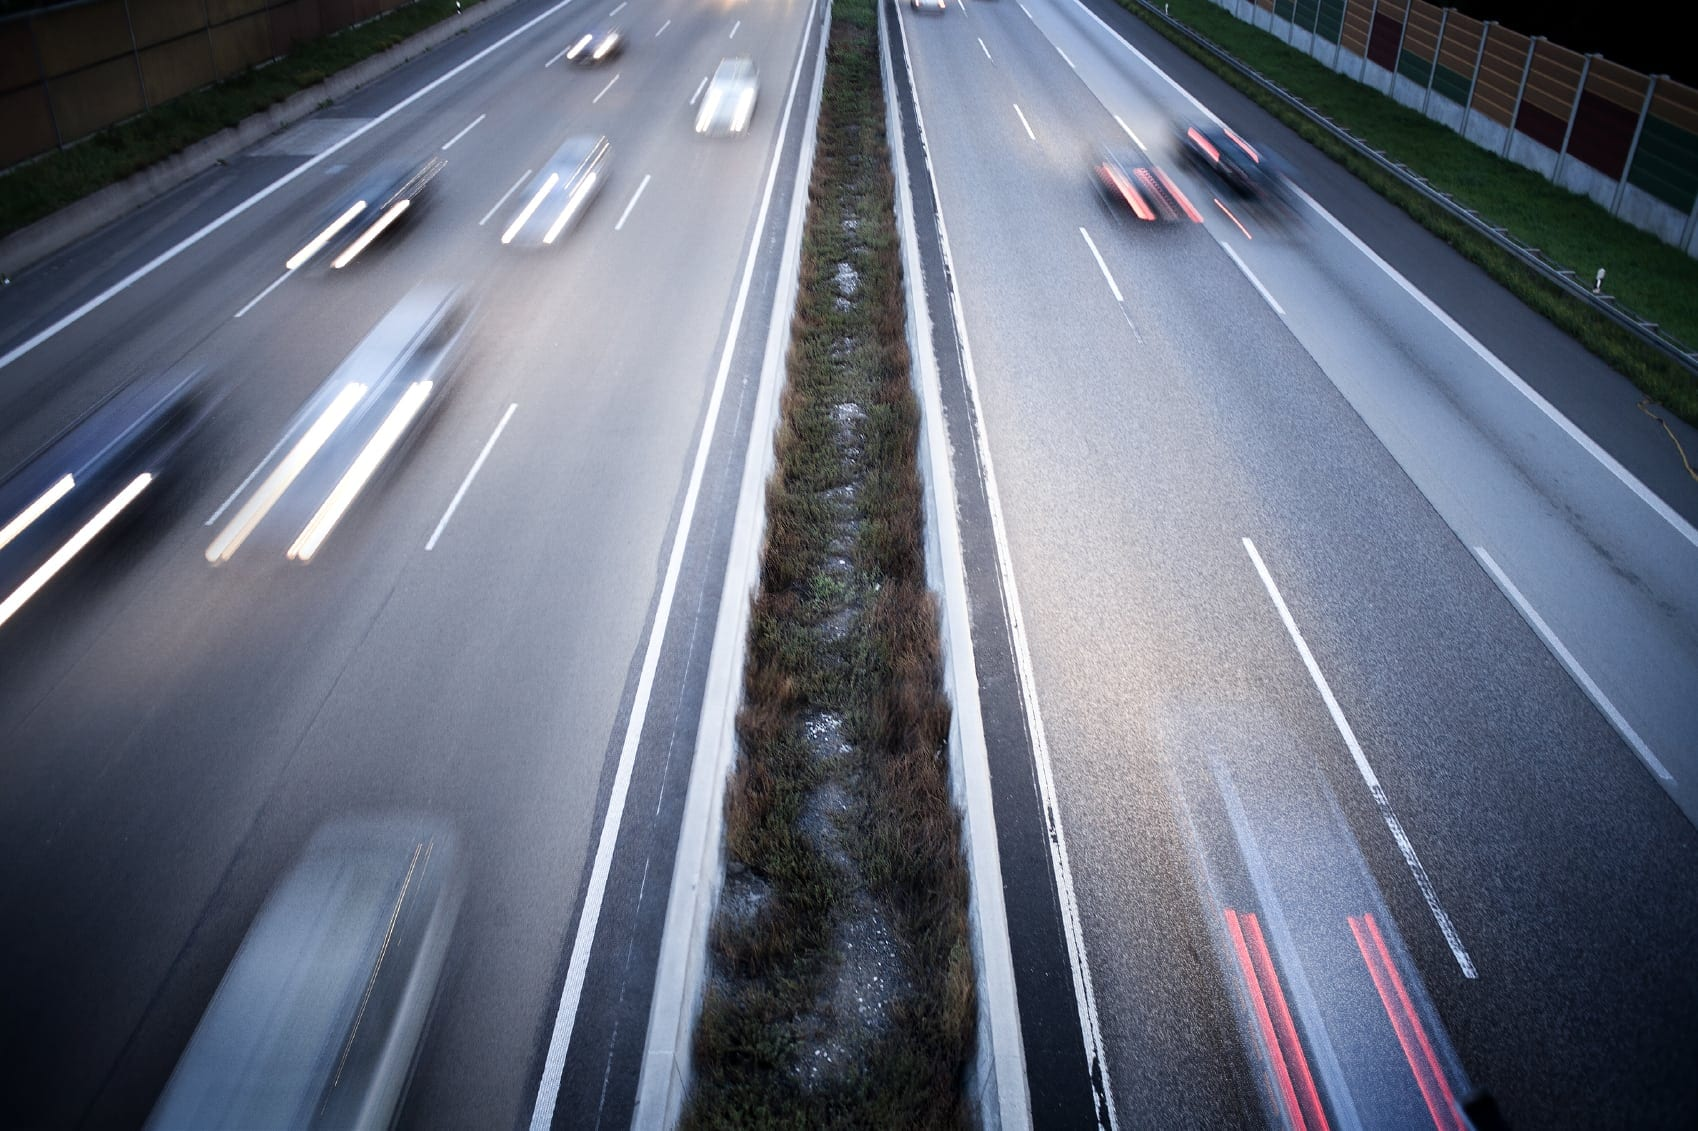 Long Lines Of Cars Driving Fast On The Highway Stock Photo